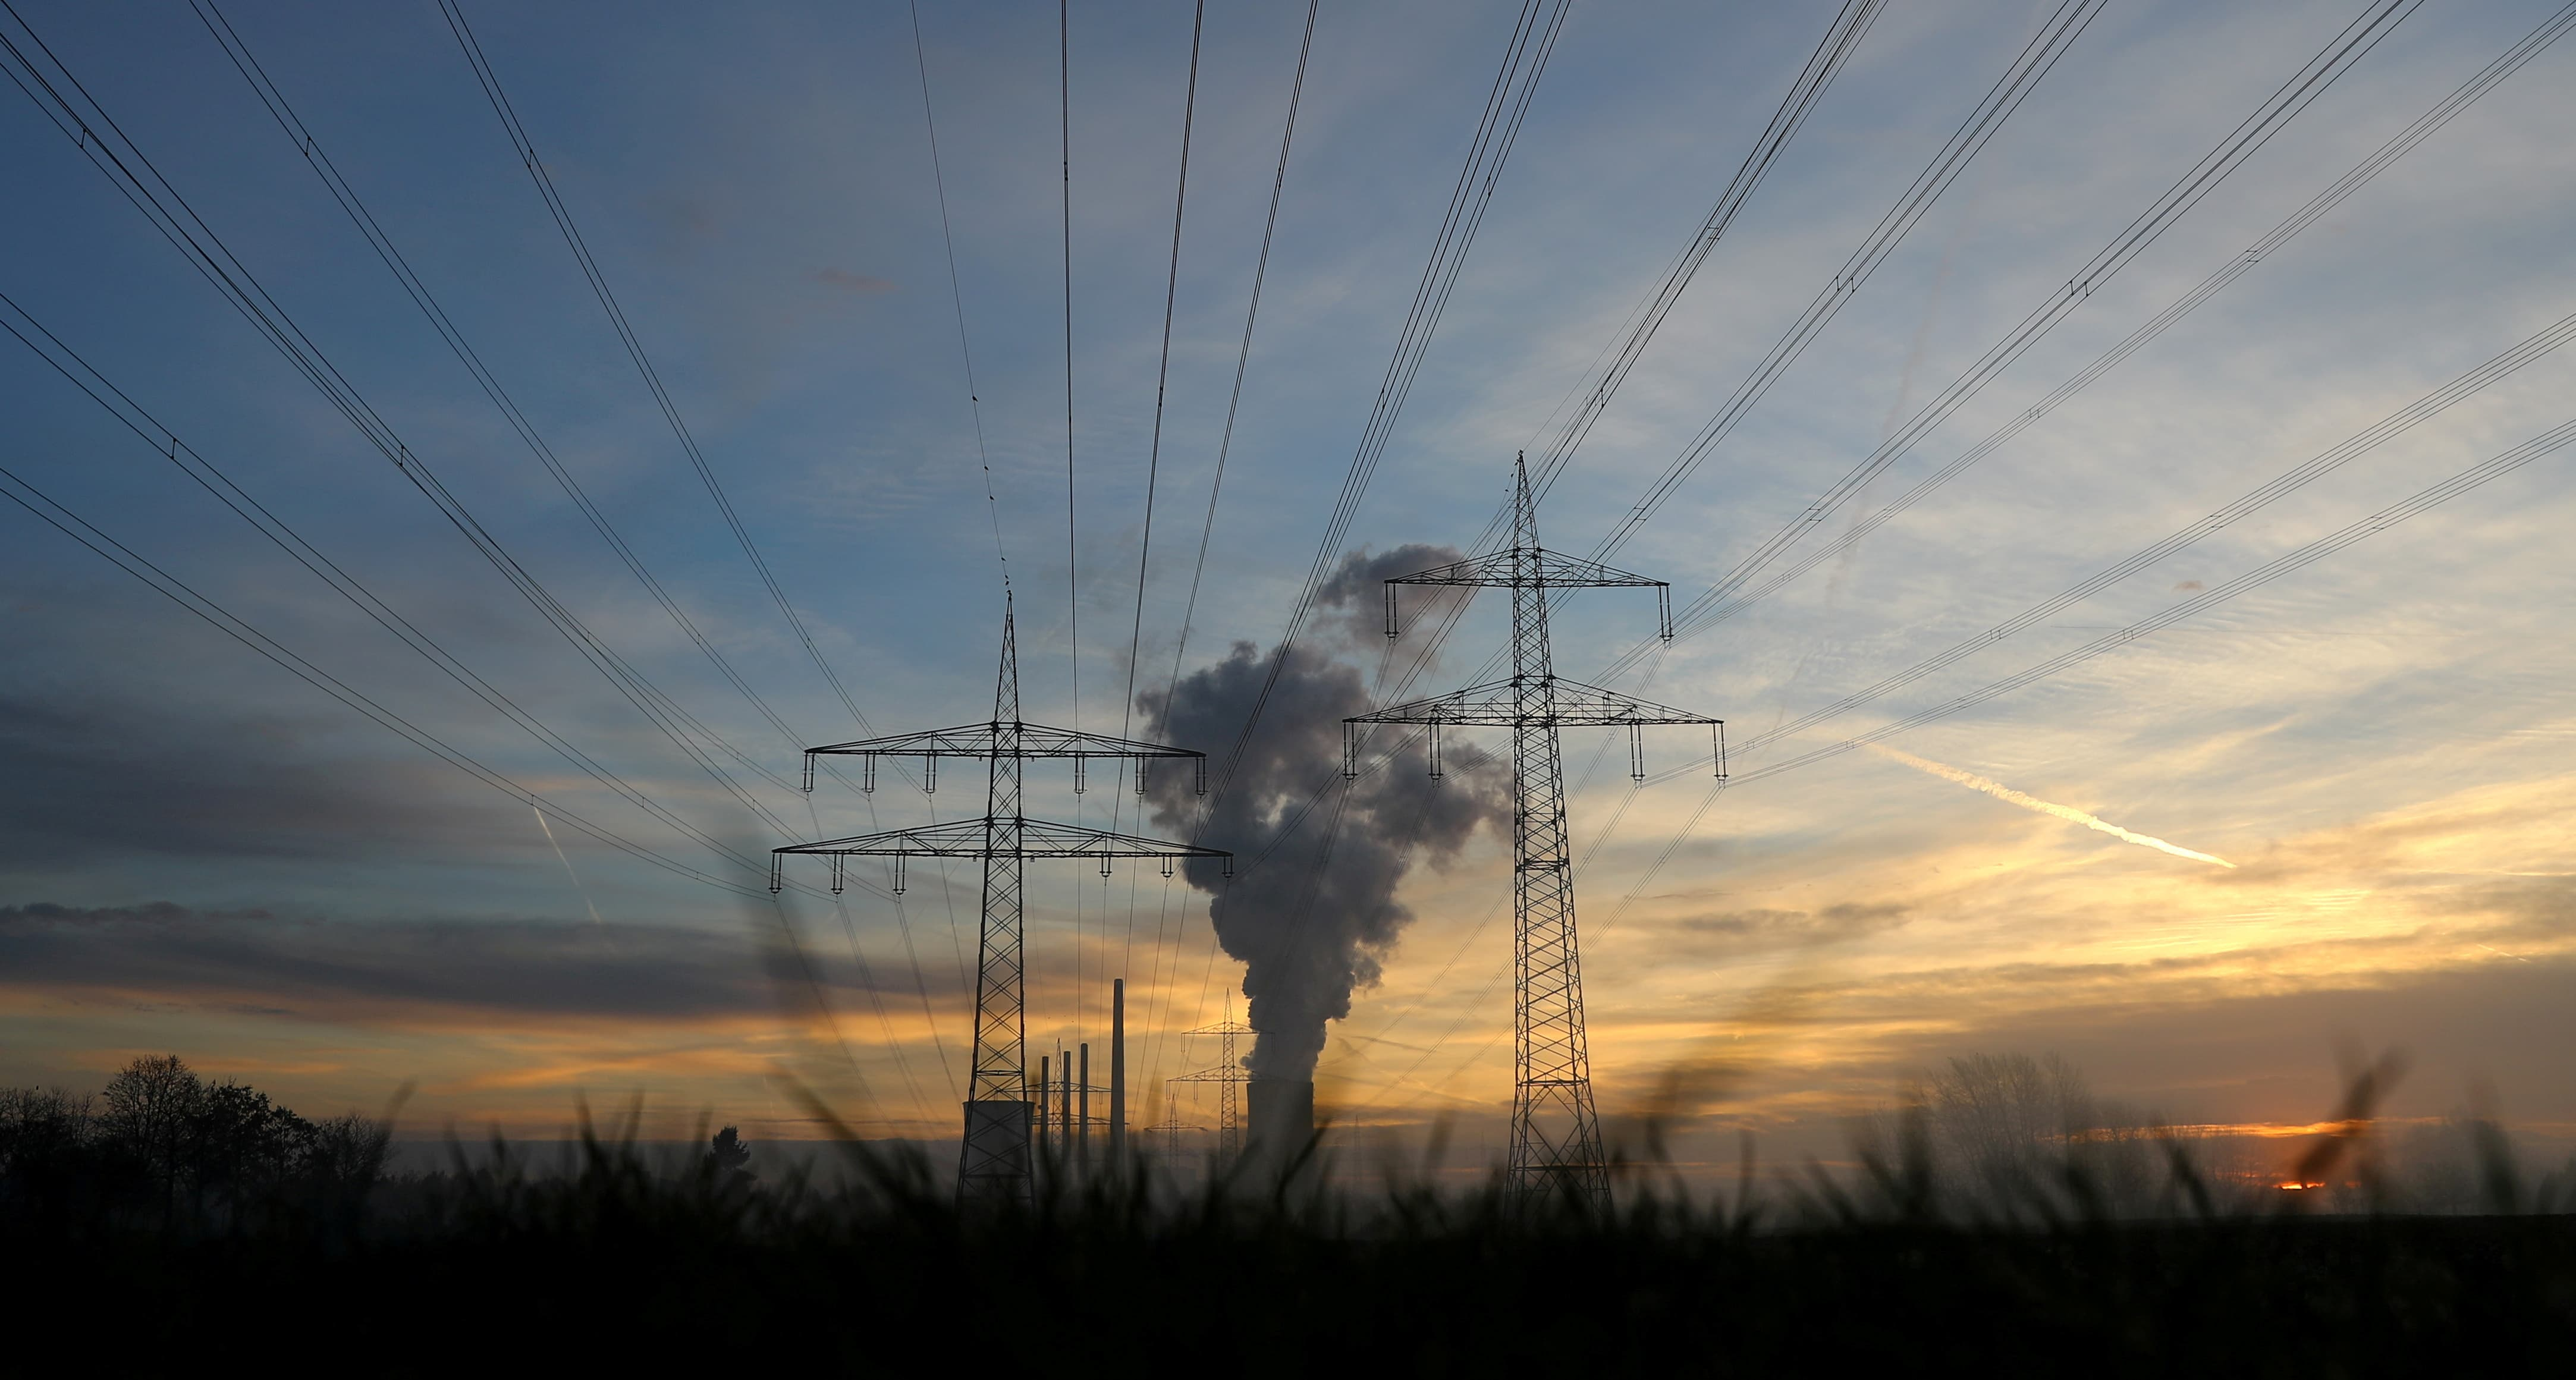 The European Union is set to take the lead in climate policy action among the world's biggest greenhouse gas emitters this week. (Reuters)